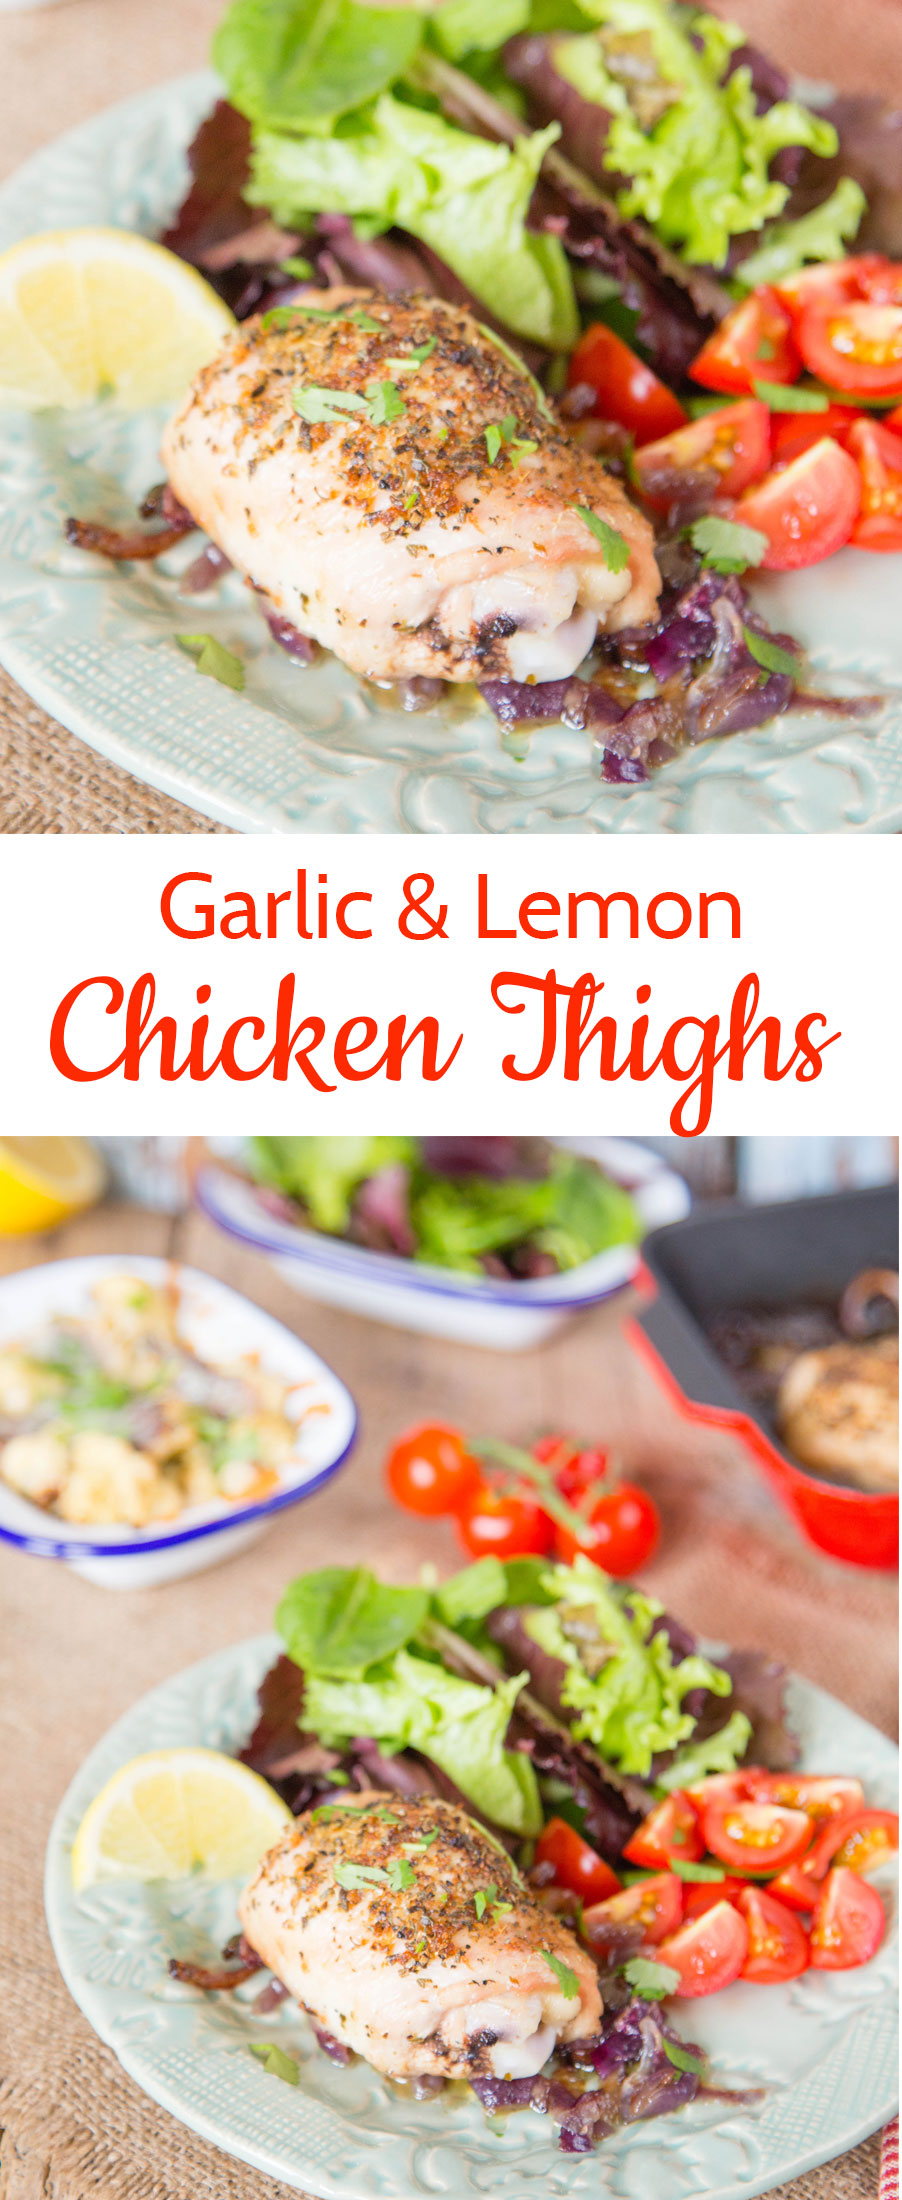 You will love these crispy skin garlic and lemon chicken thighs.  An easy, leave it to cook weeknight supper.